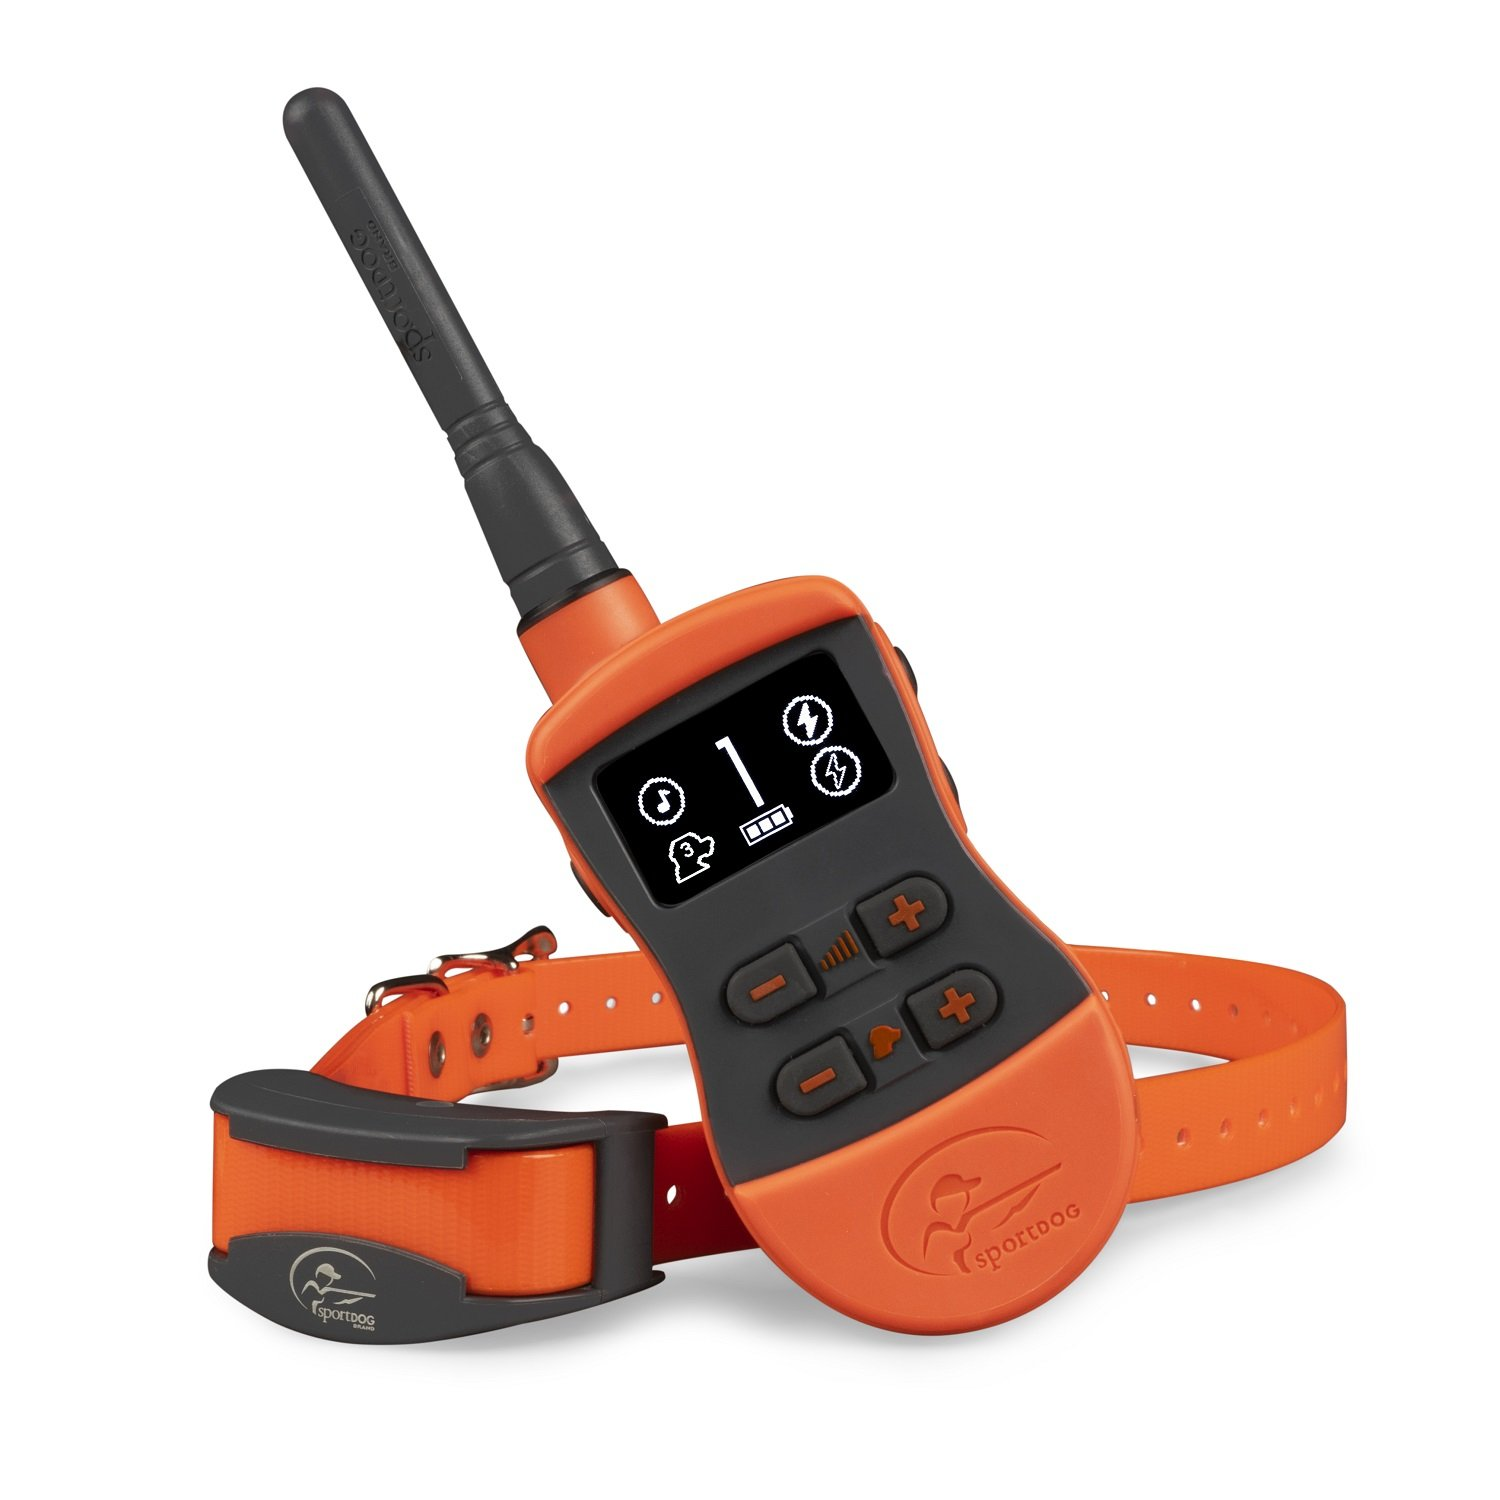 SportDOG Brand SportTrainer Remote Trainers - Bright, Easy to Read OLED Screen - Up to 3/4 Mile Range - Waterproof, Rechargeable Dog Training Collar with Tone, Vibration, and Shock